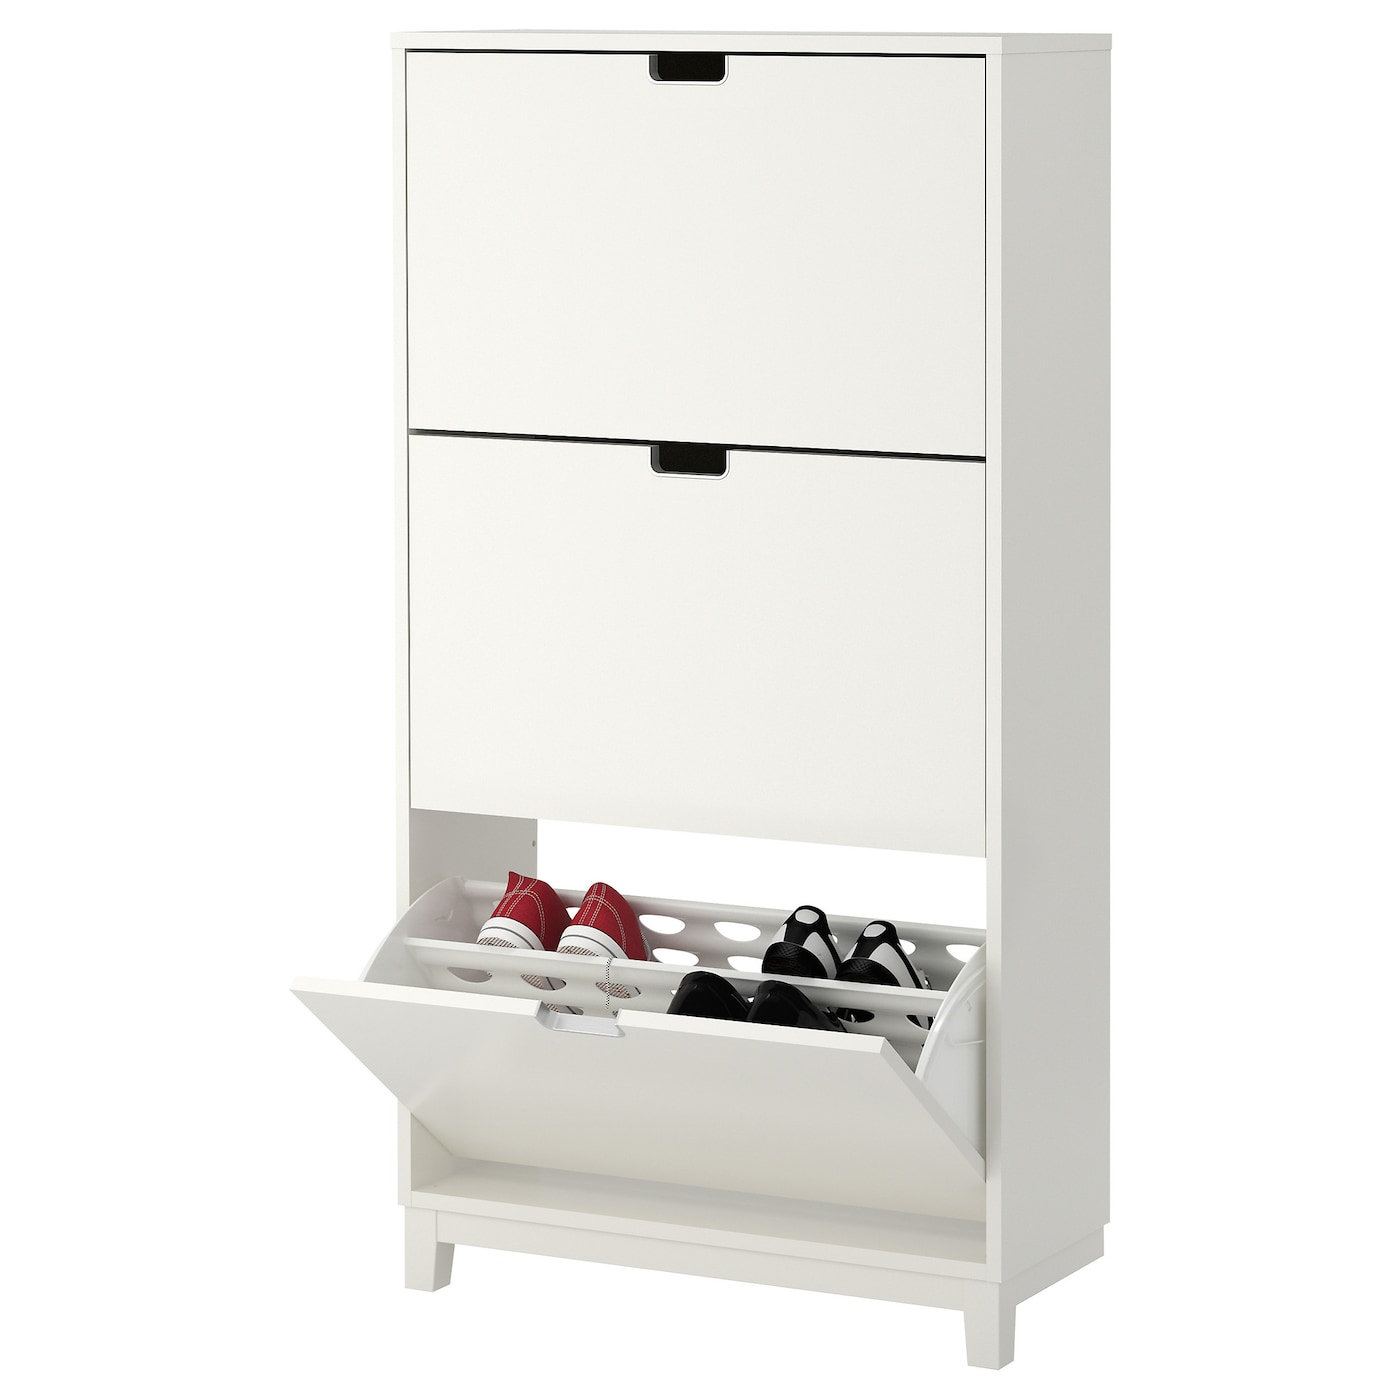 save ideal mackap storage r smaller areas space the cabinet lovely doors in ikea sliding shoe since